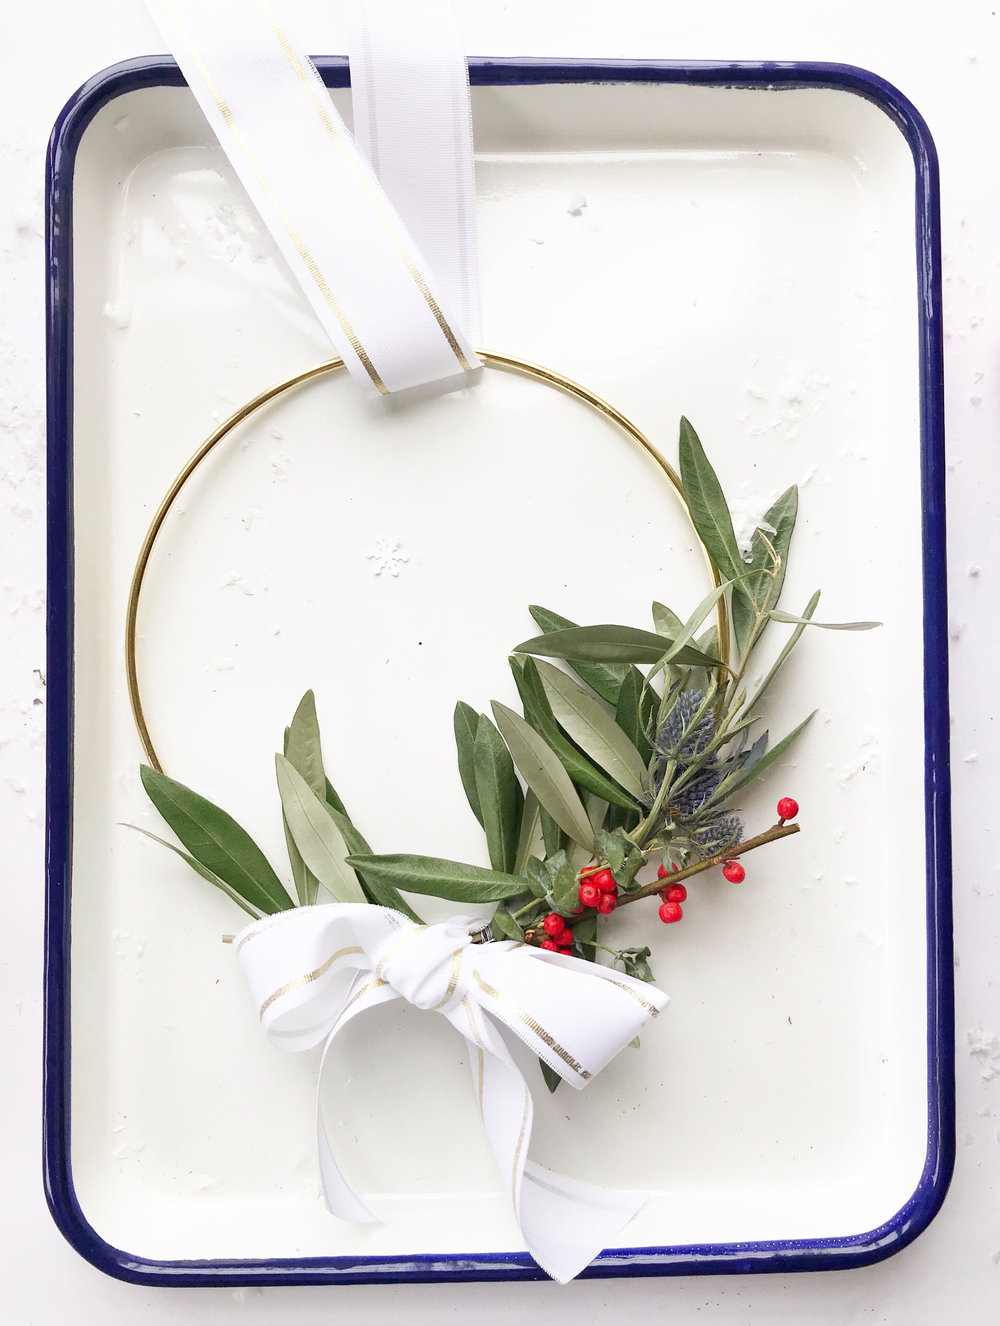 diy_holiday_wreath_14.jpg